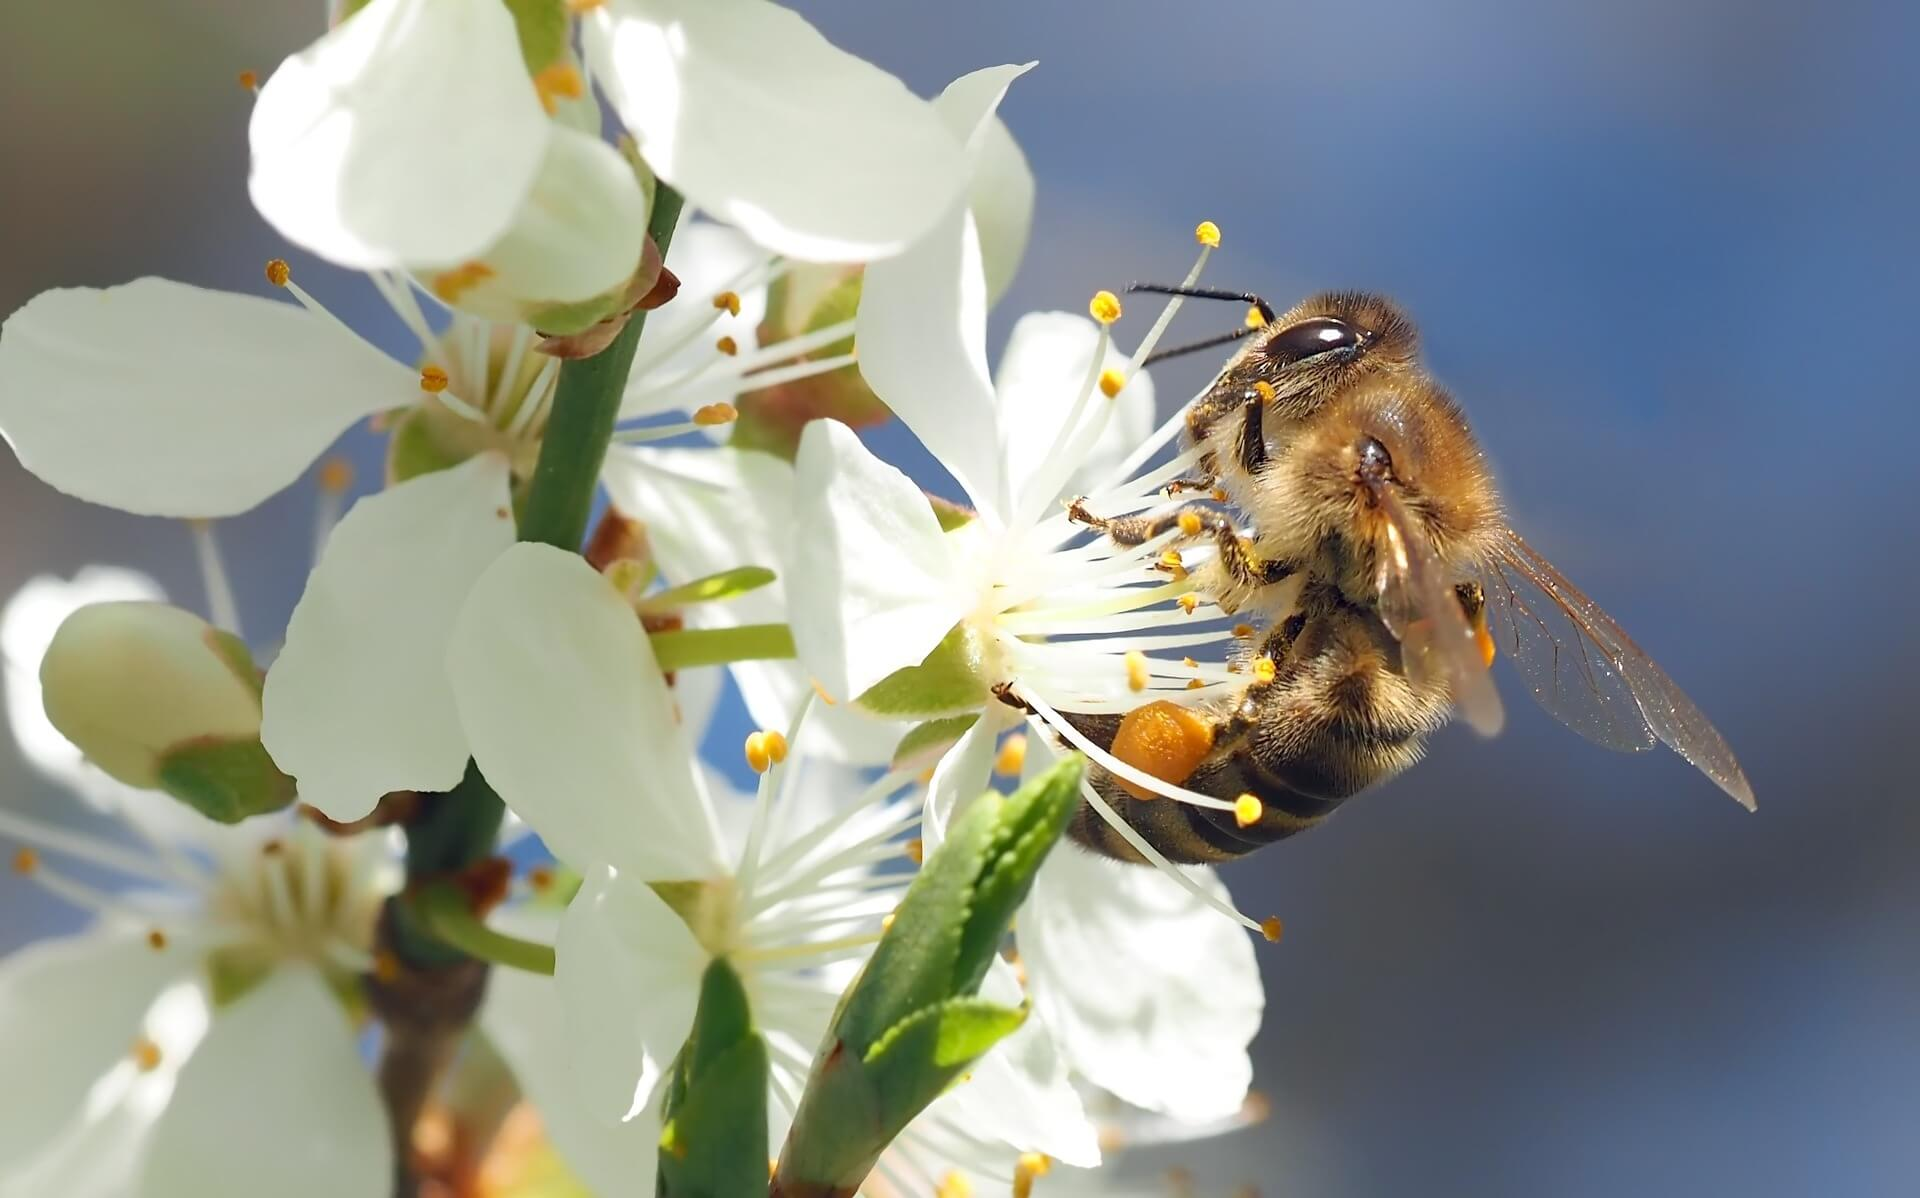 Avoiding Bees and Preventing Bee Stings